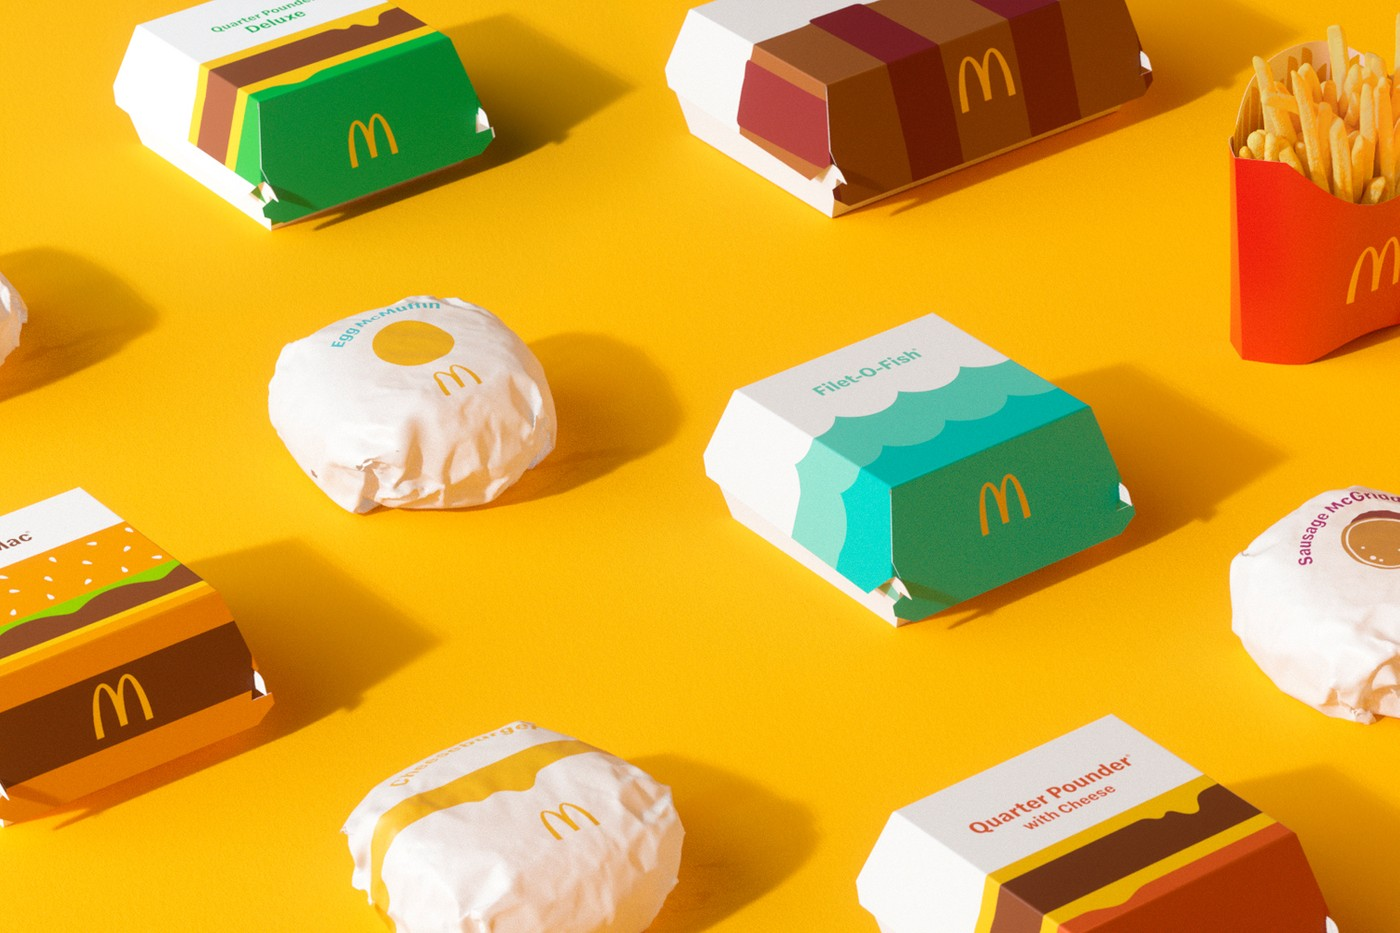 mcdonalds redesign rebranding packaging containers 0